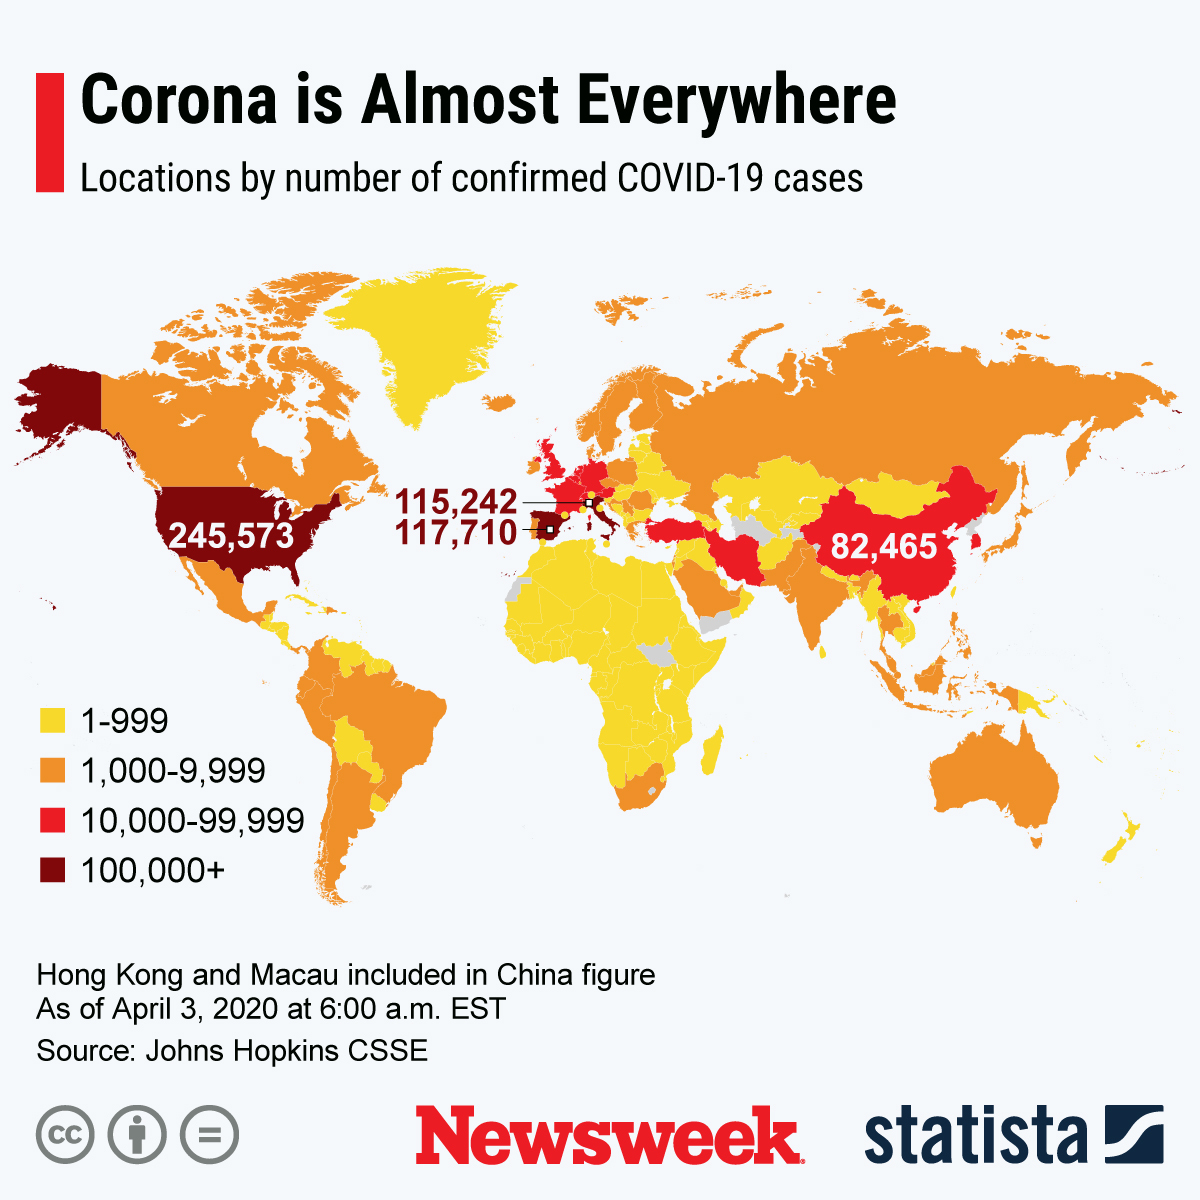 coronavirus, map, covid-19, countries, world